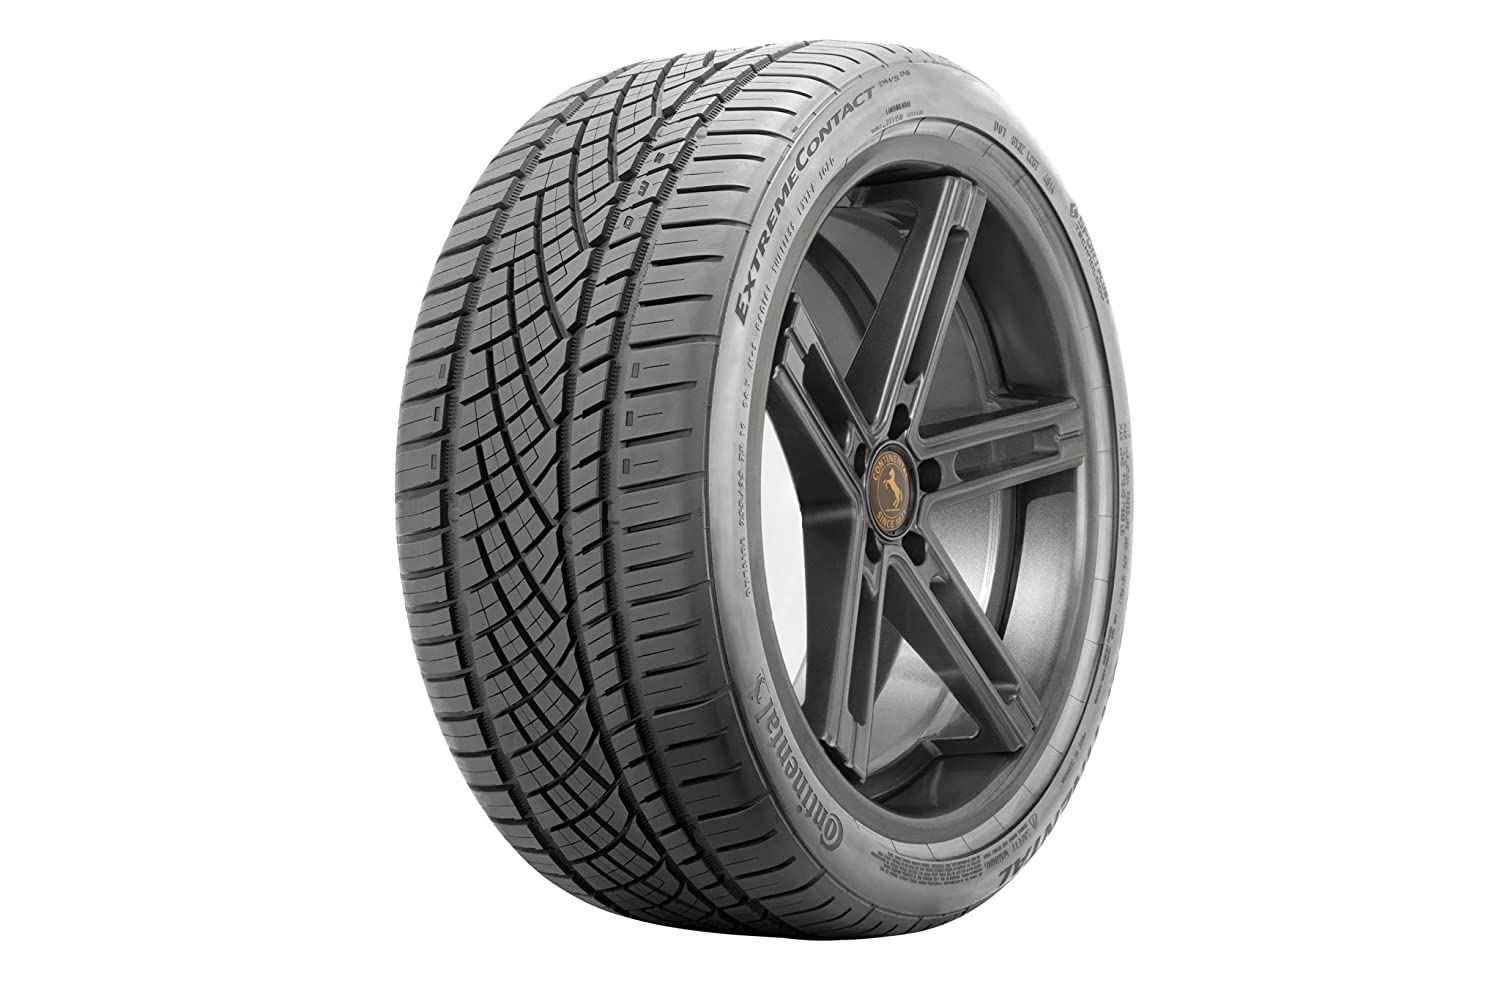 Continental Extreme Contact DWS06 All-Season Radial Tire - 235/45ZR17 94W 15499670000